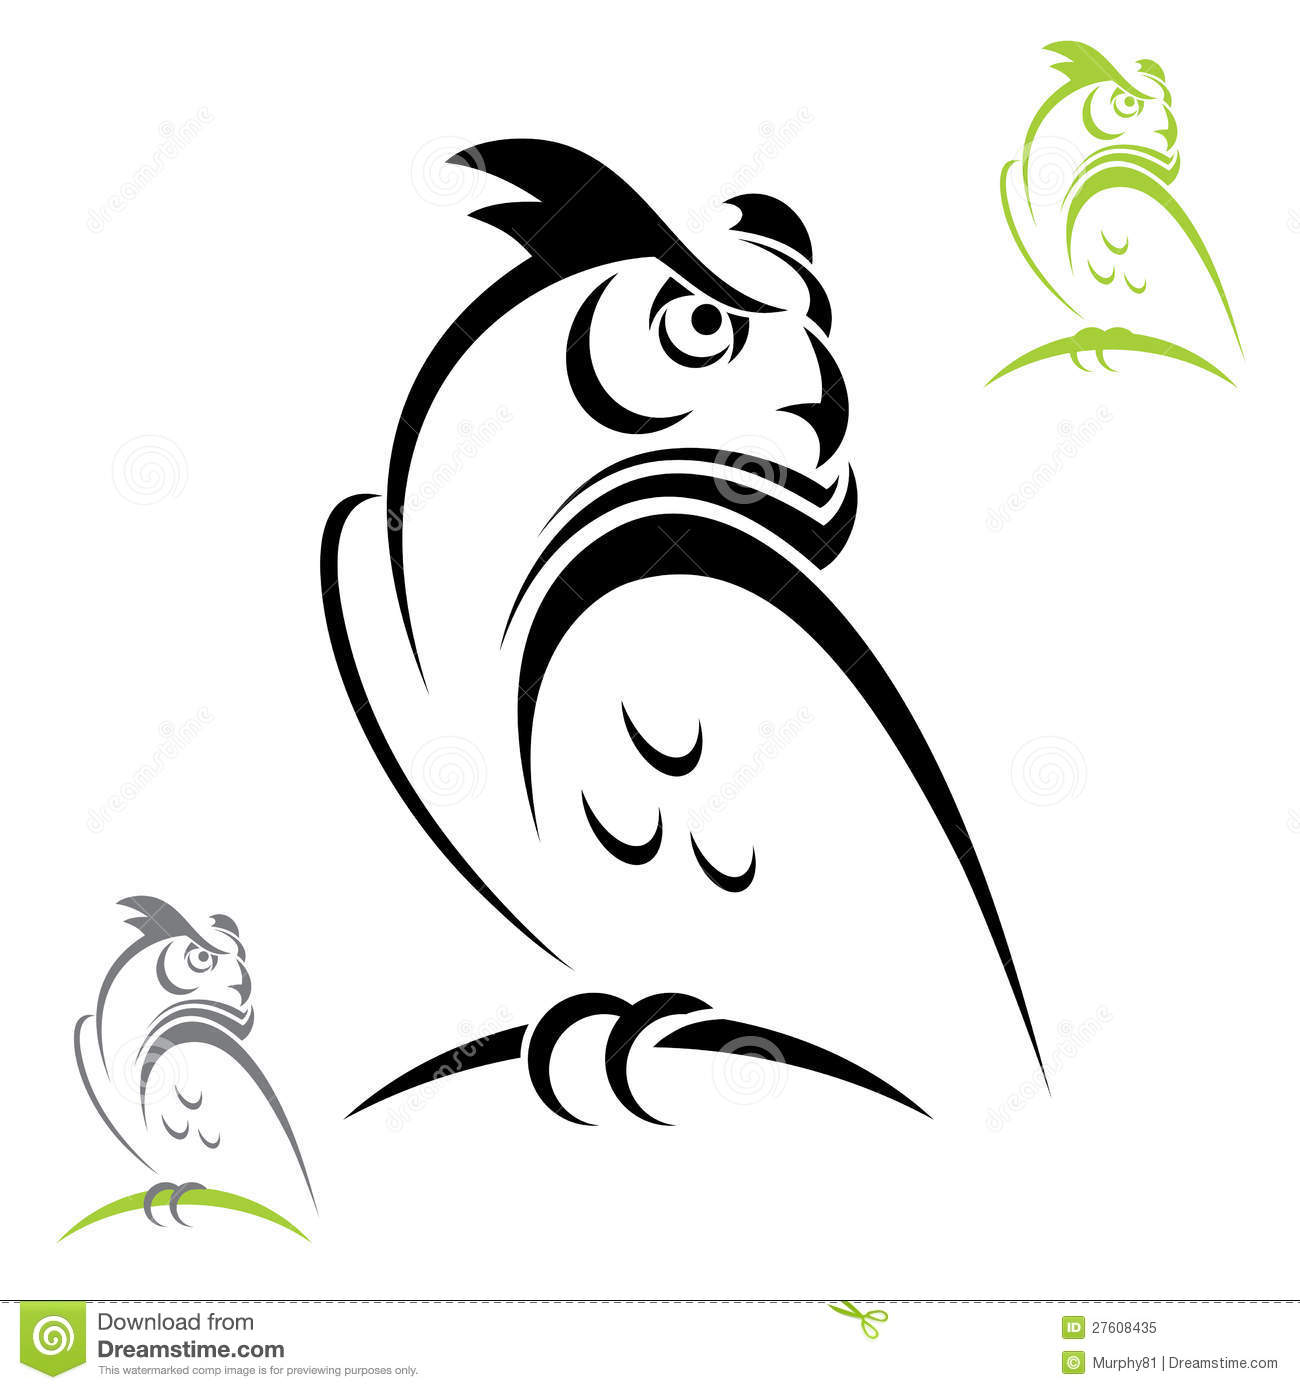 5634332328 furthermore Poisson Dessin Anim C3 A9 Gm484212128 71467323 in addition Simple Tribal Owl additionally Japanese Sword Training additionally Fish Line Drawings. on simple fishing drawing